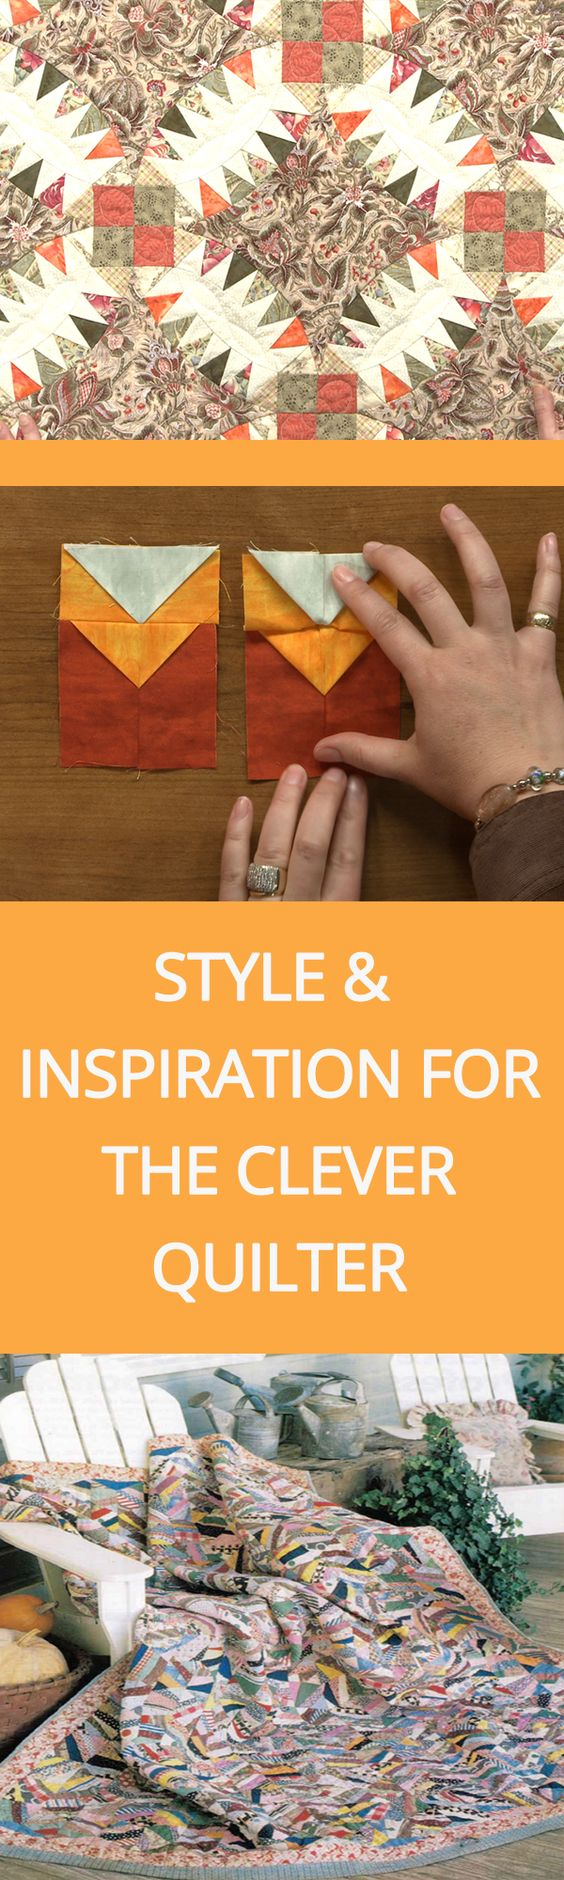 Style and Inspiration for the Clever Quilter Download | National Quilters Circle  #LetsQuilt